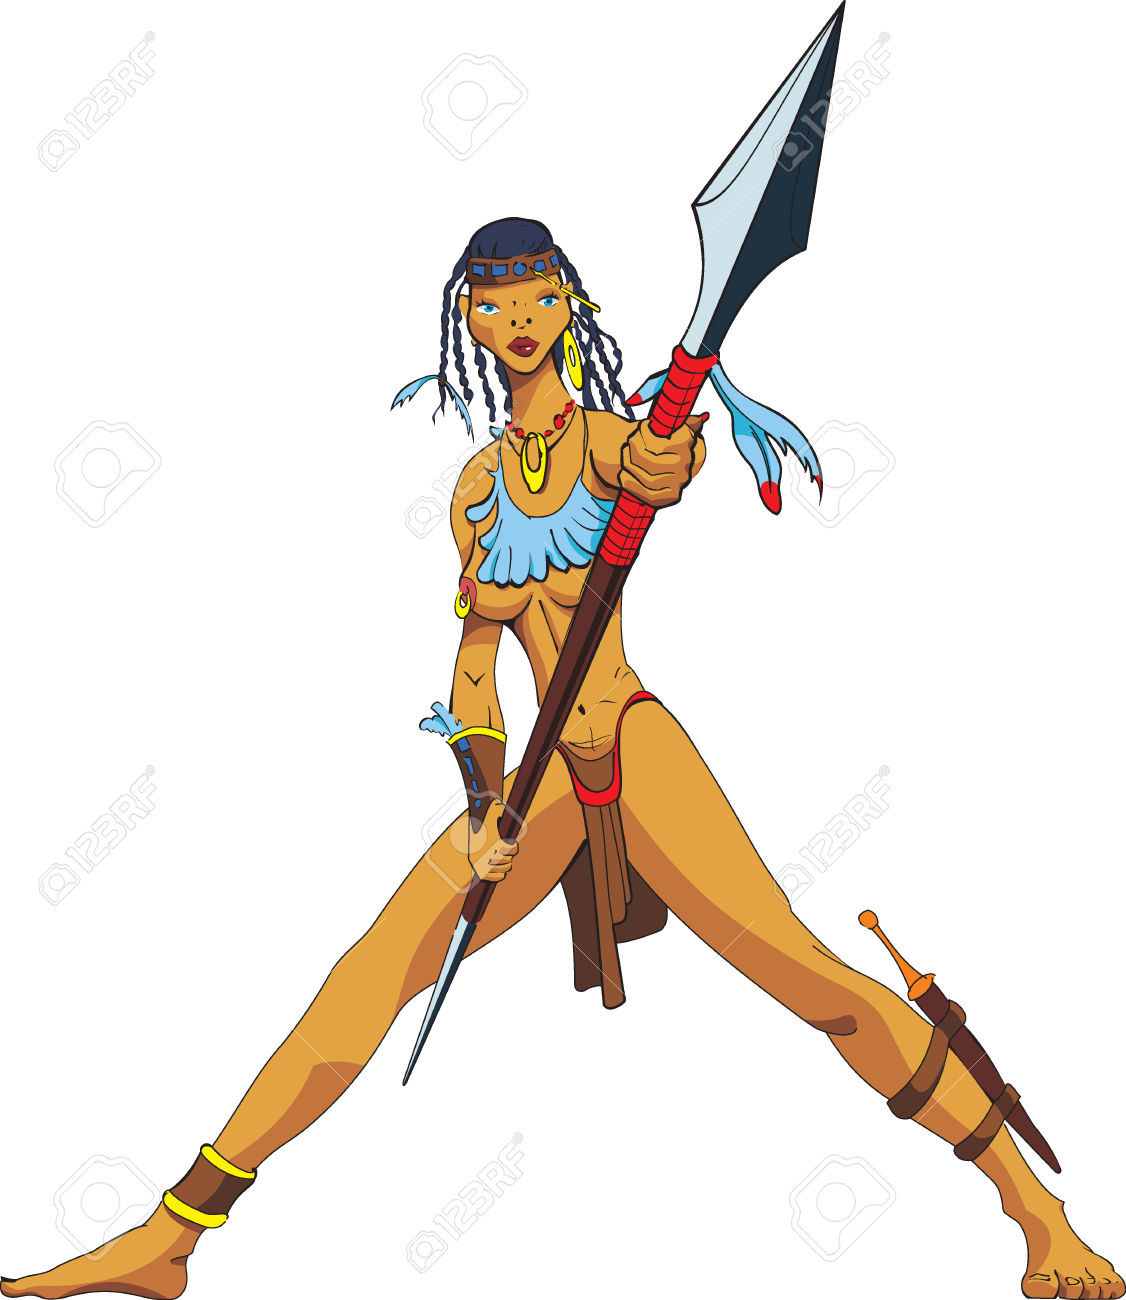 Amazon With A Spear. Royalty Free Cliparts, Vectors, And Stock.